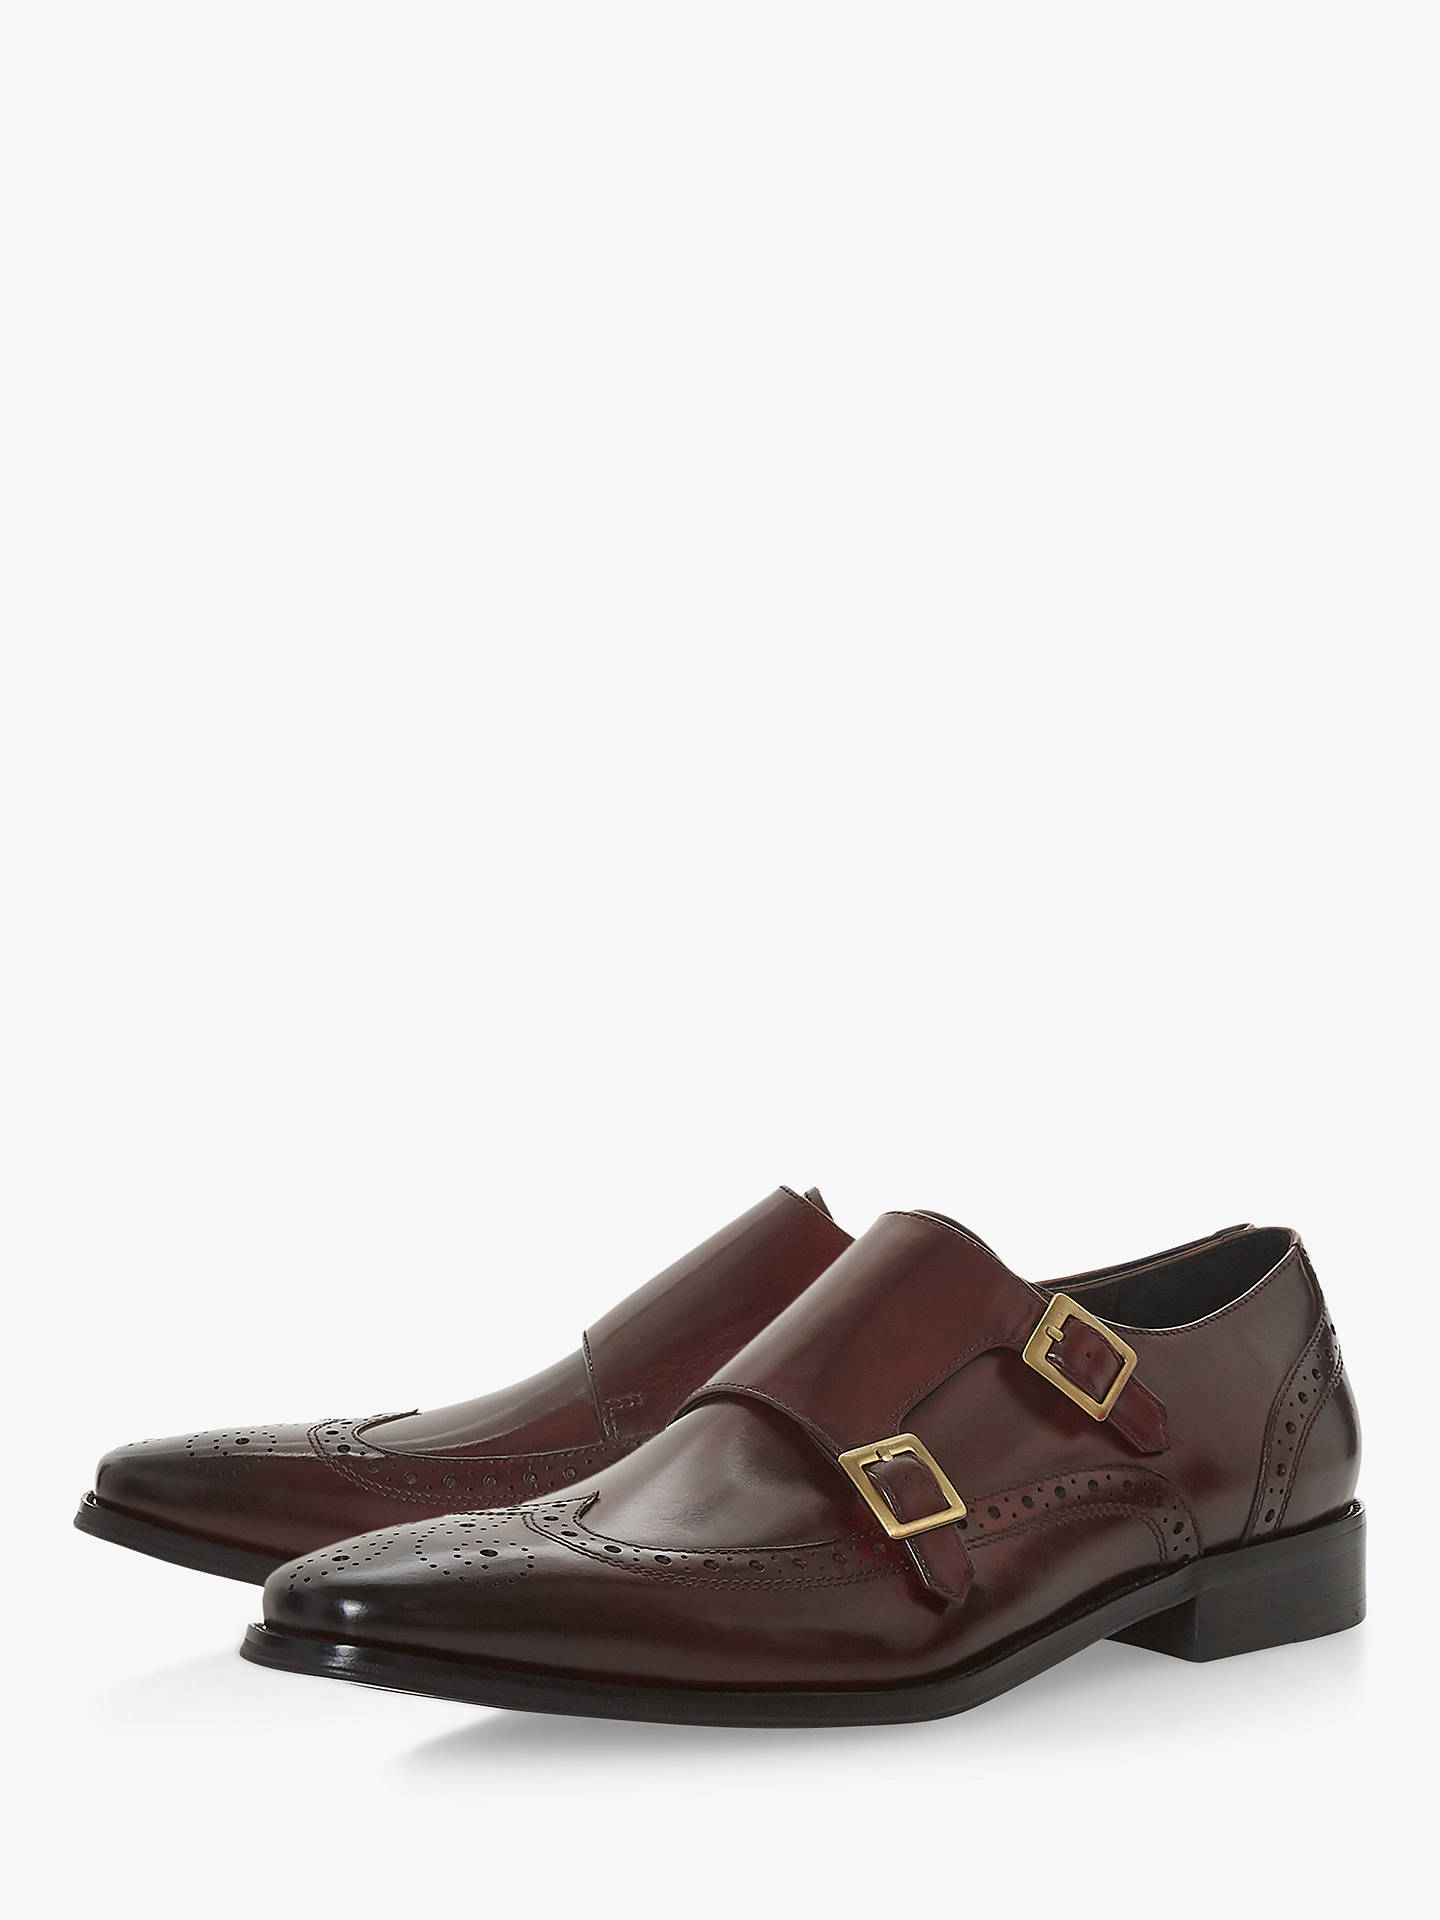 BuyDune Patch Double Buckle Monk Shoes, Burgundy, 6 Online at johnlewis.com